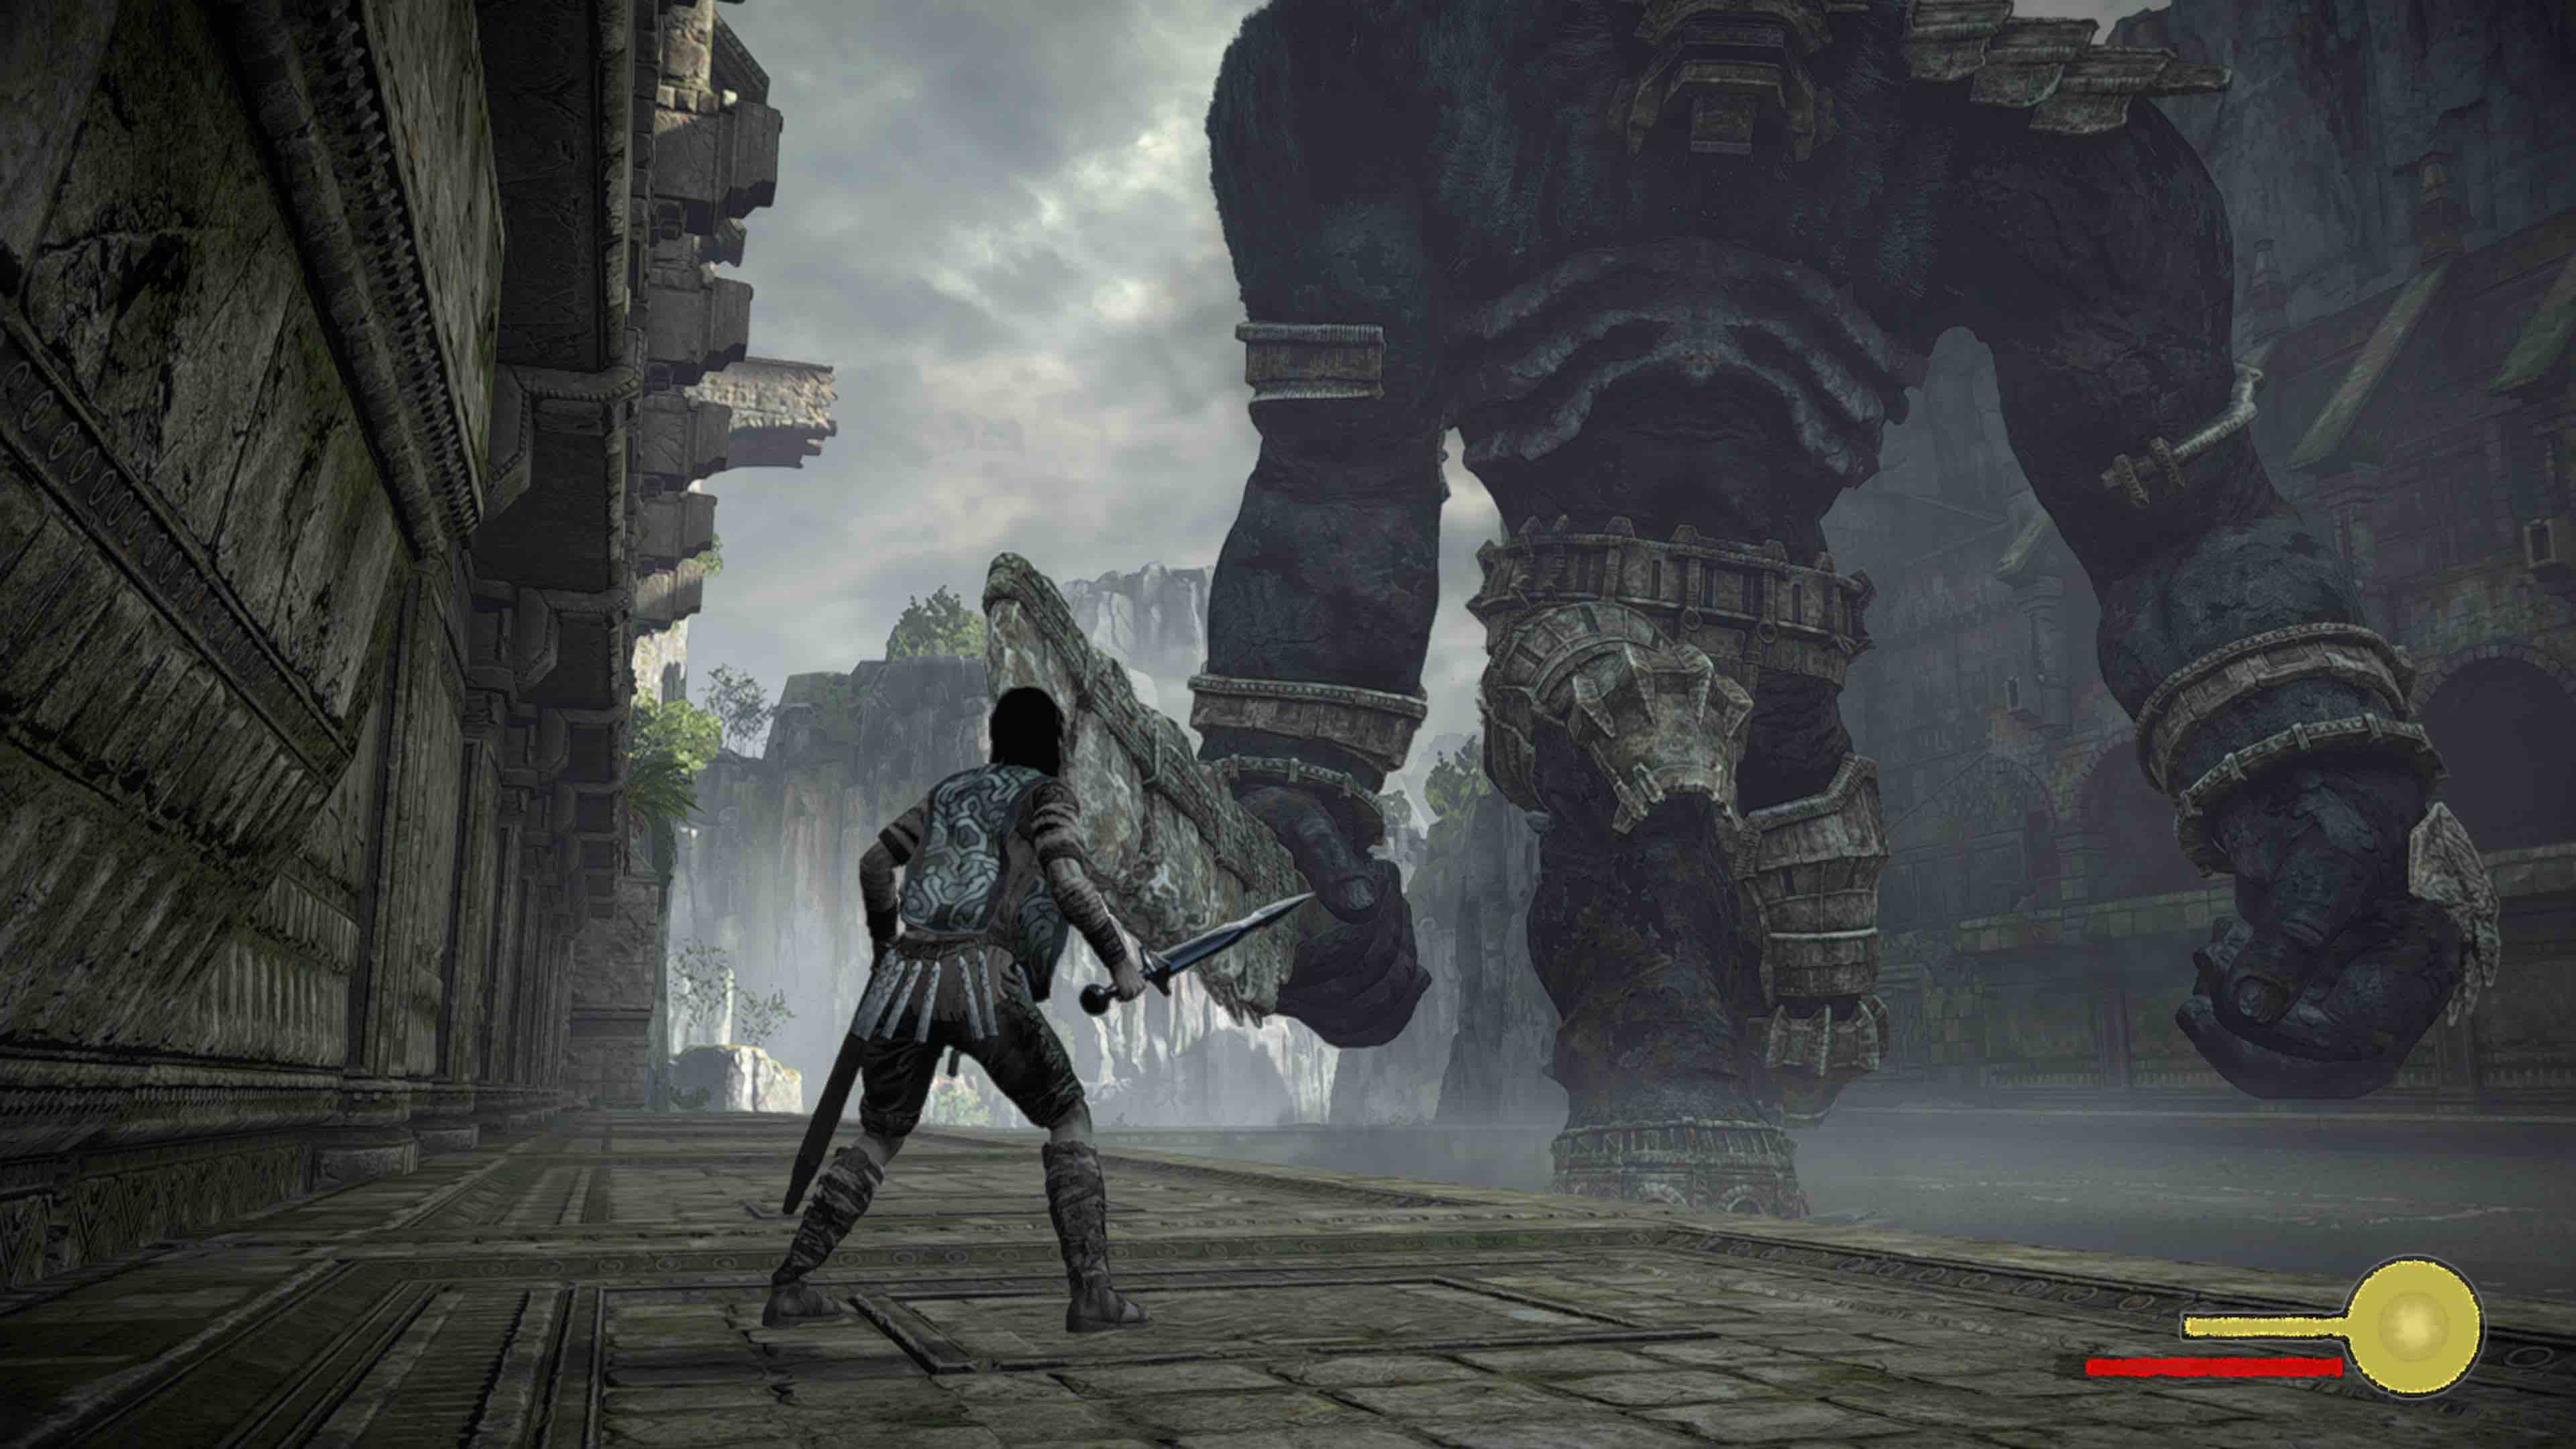 Shadow_of_the_Colossus_Coloso_15_3